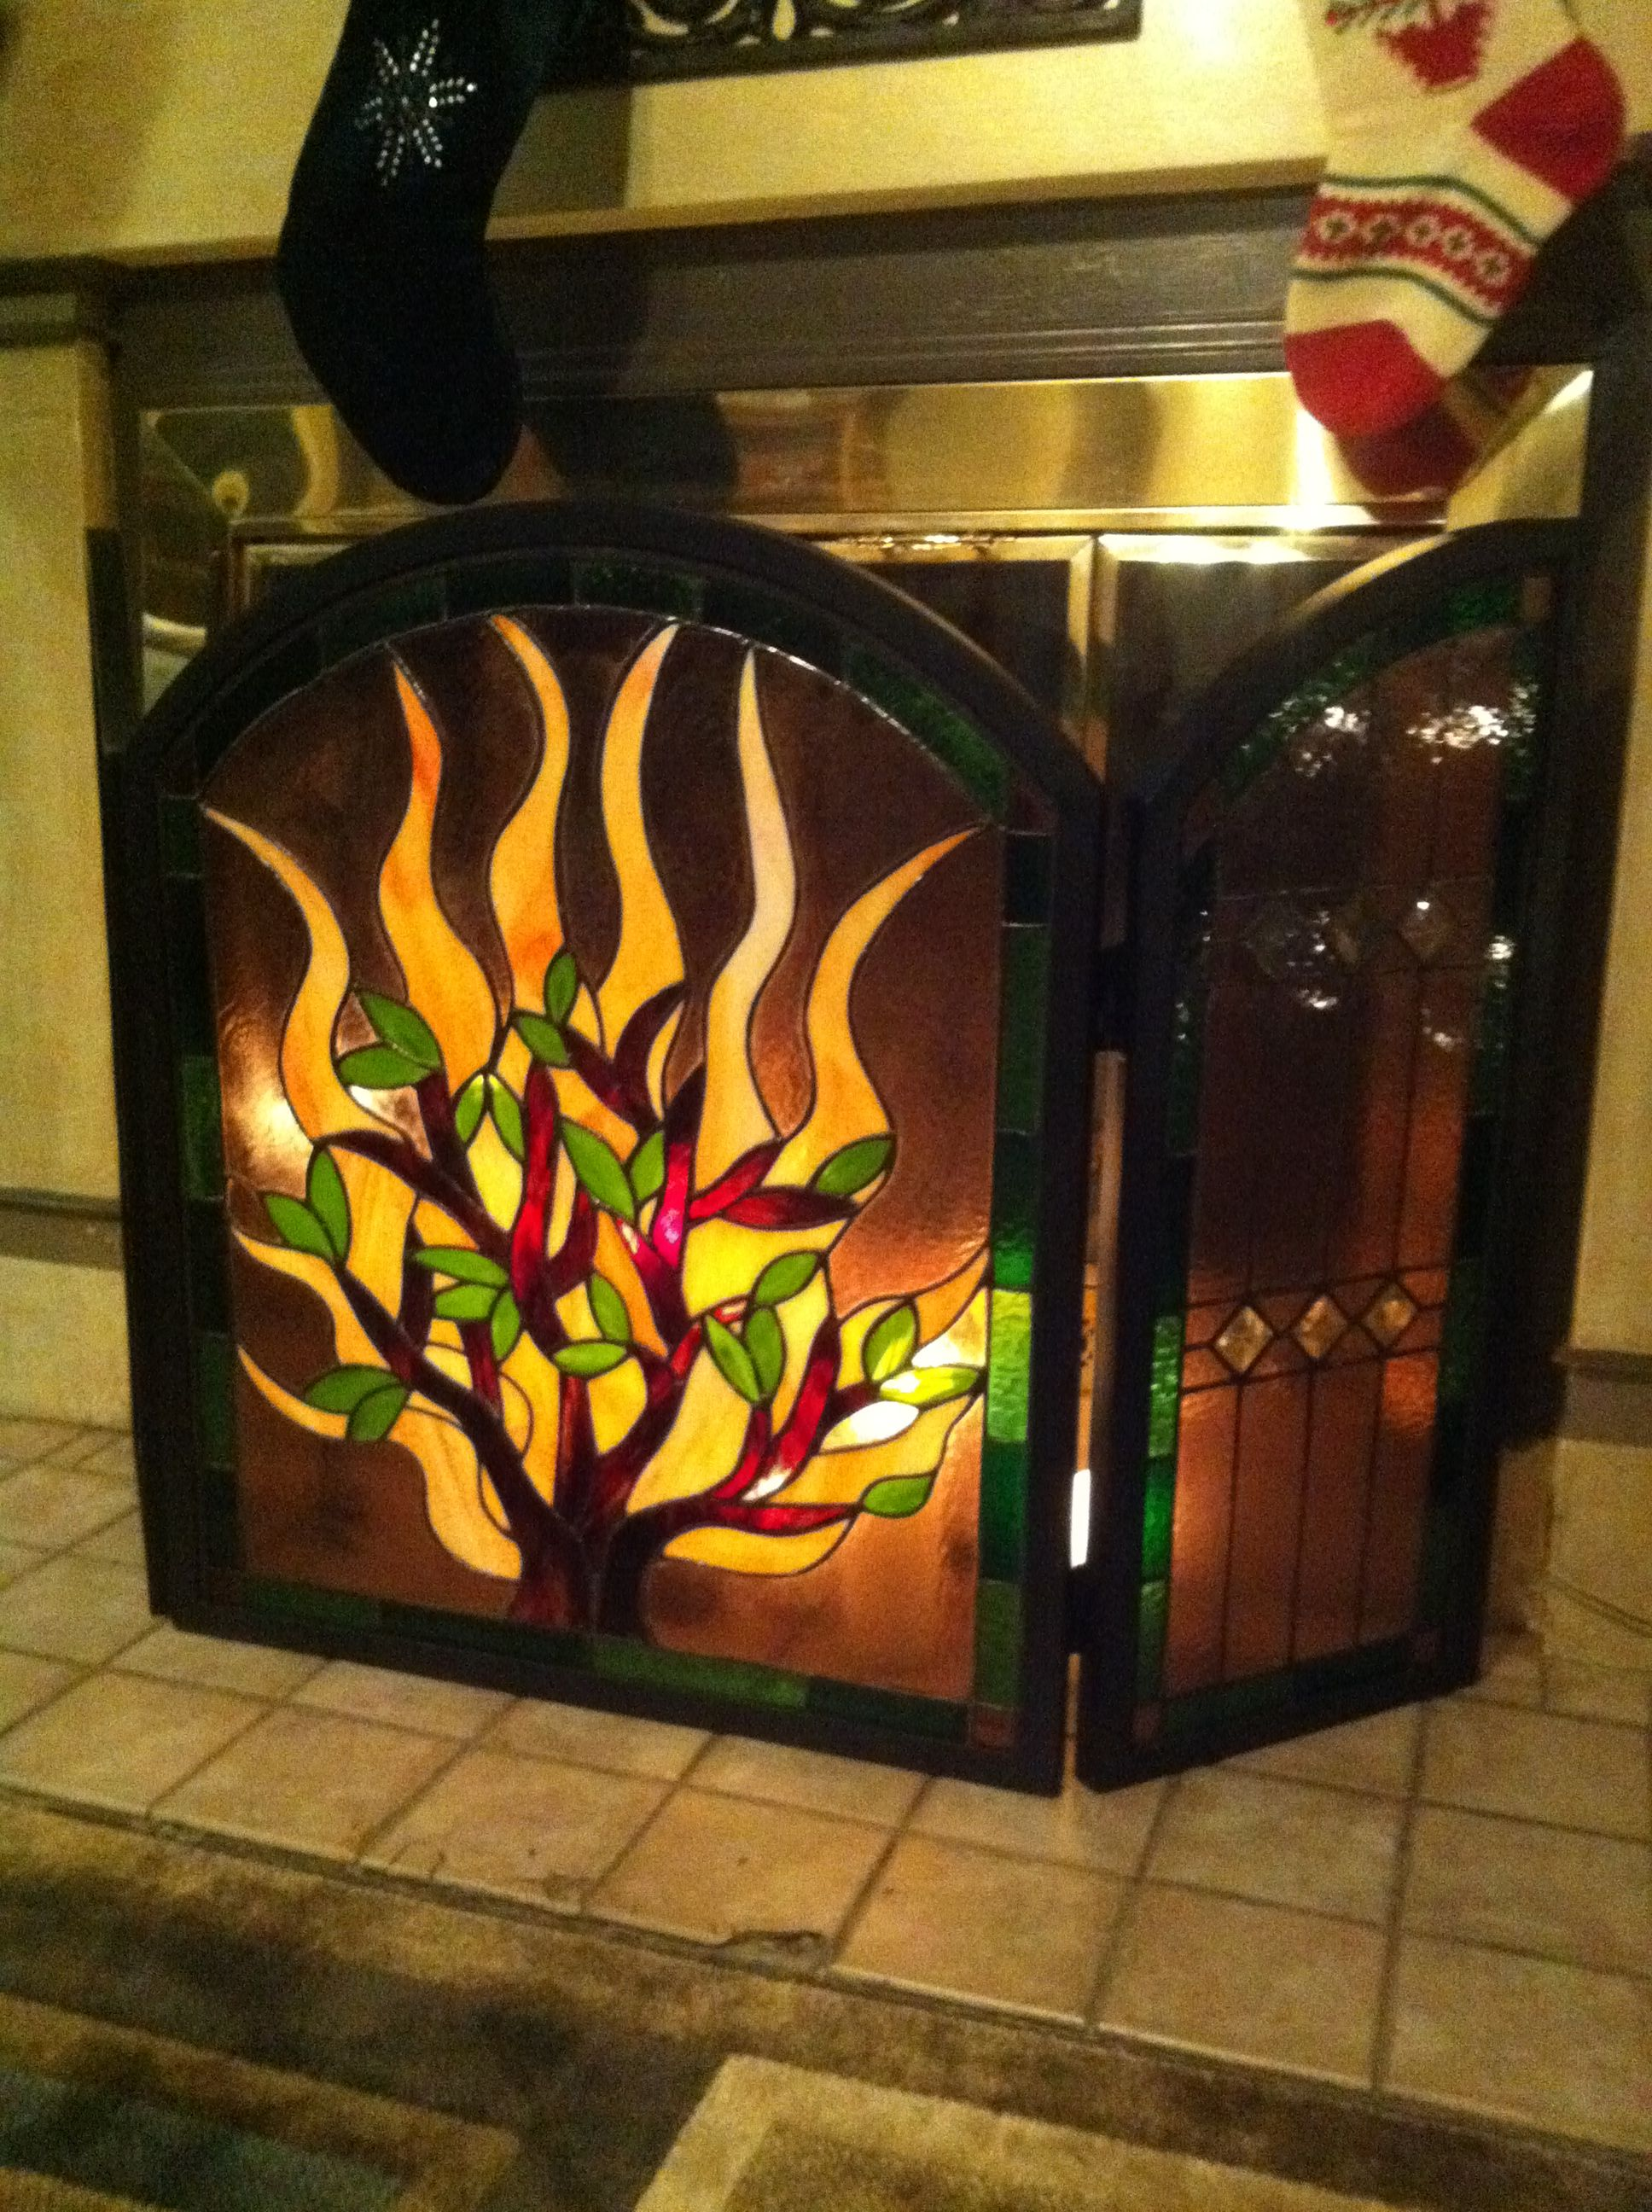 Fireplace Screens Tree Design My Fireplace Made By Me Vicky True Baker Stained